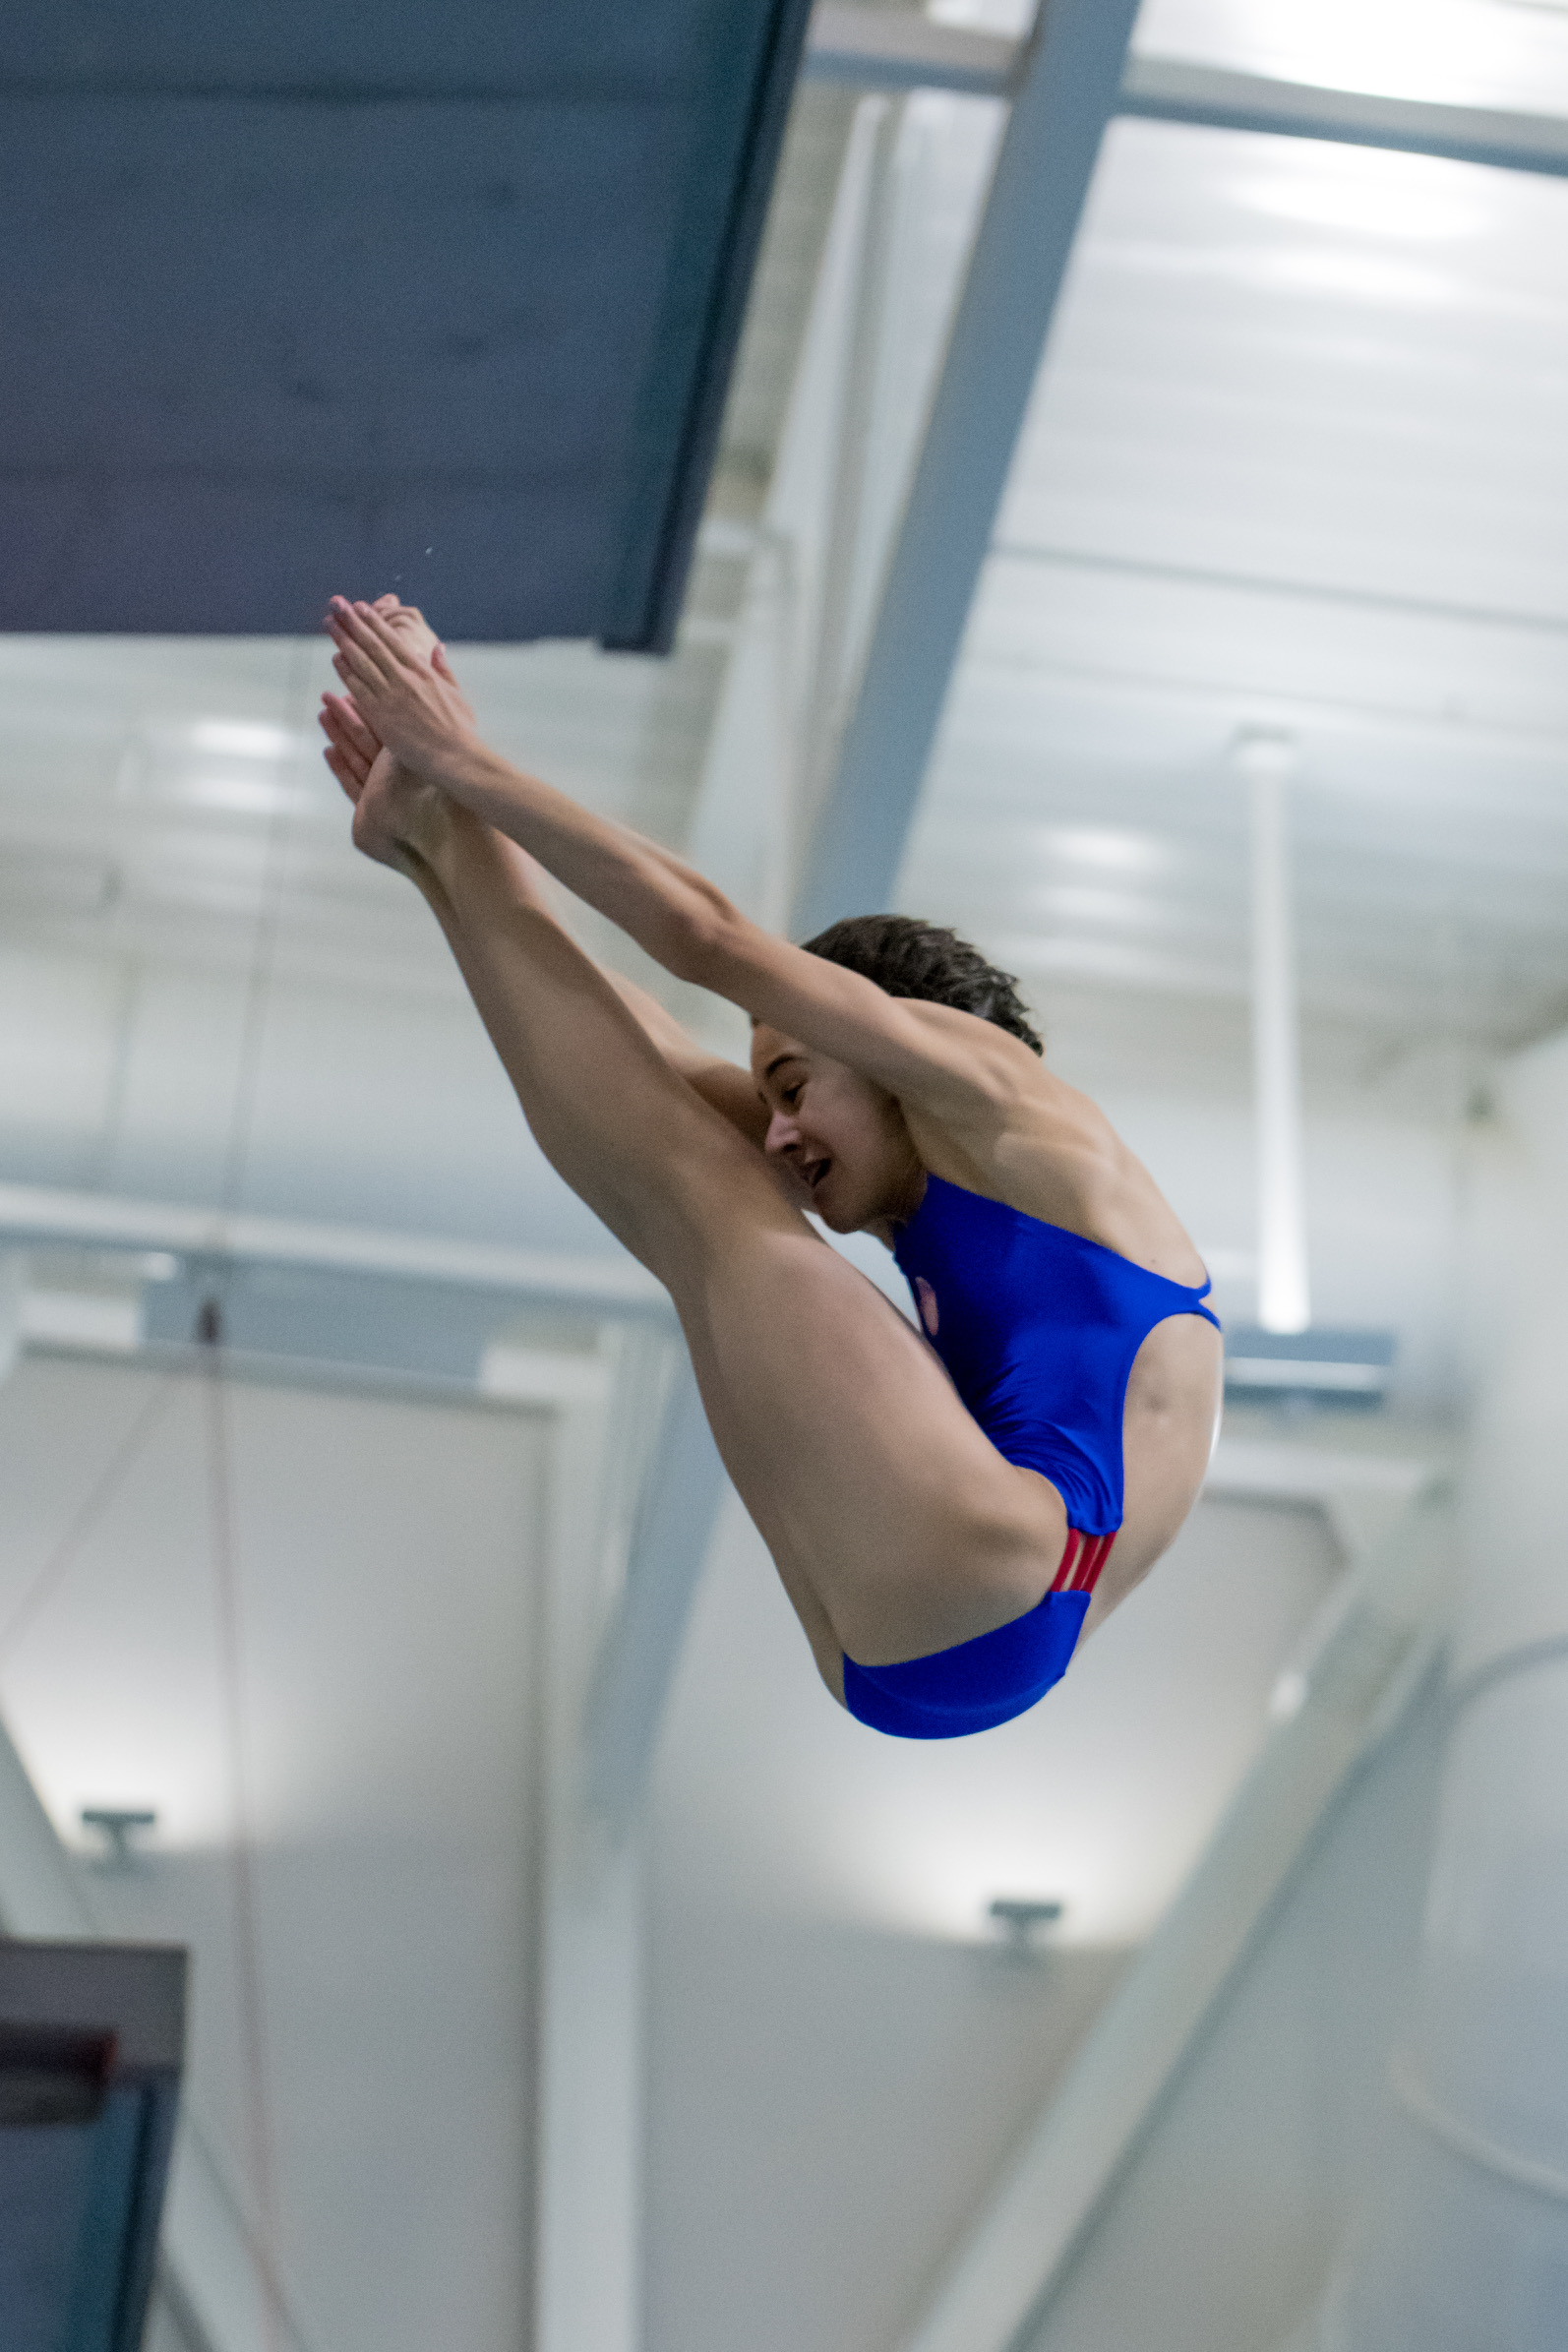 Maria is doing a 201b, a back-dive pike, on the 3-meter platform.